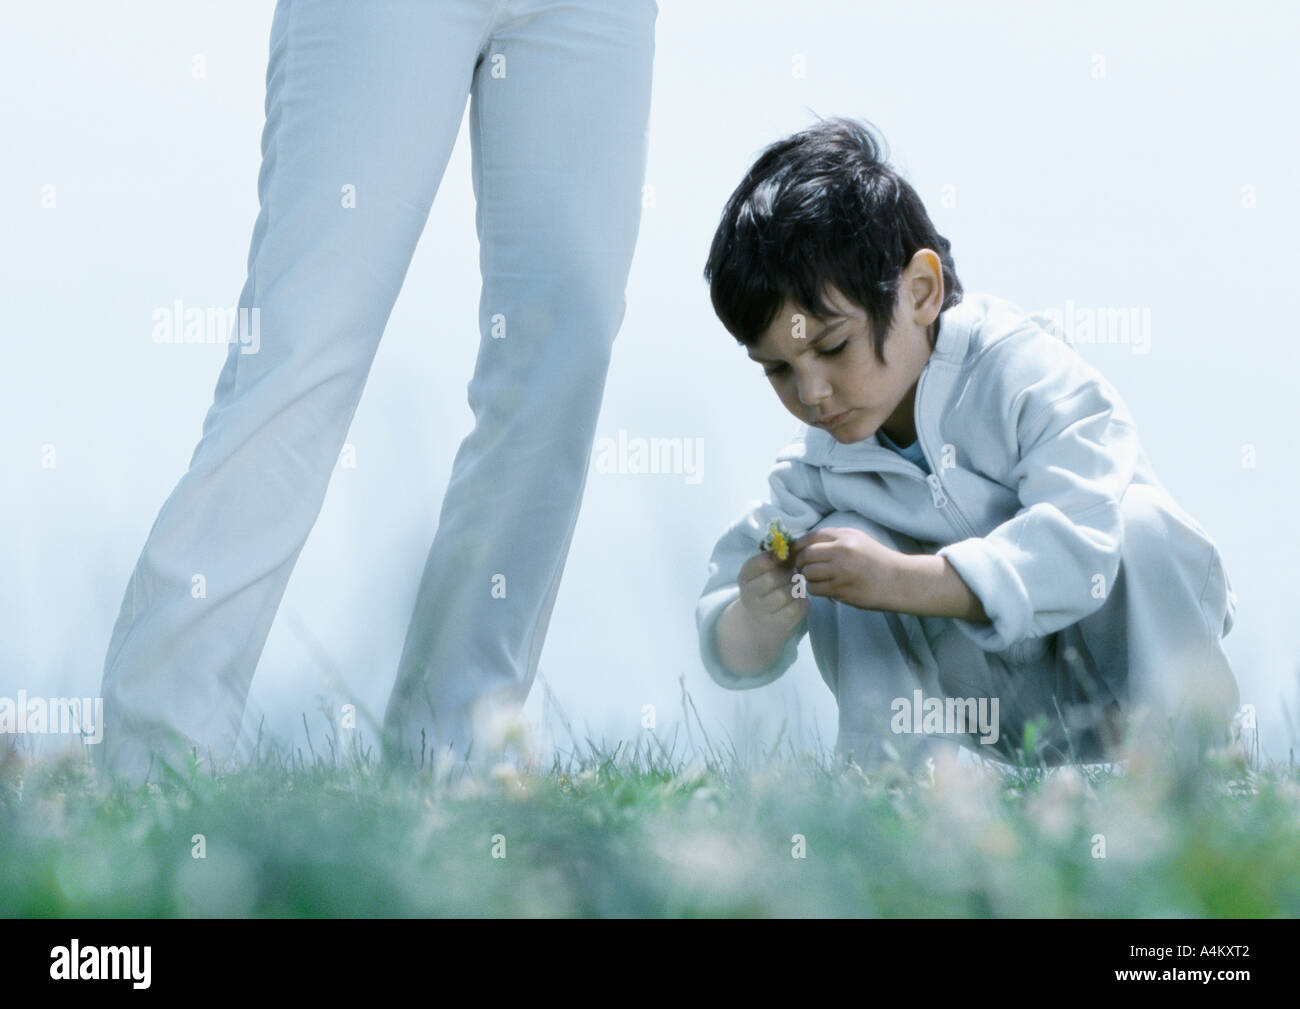 Little boy squatting down on grass looking at flower, next to woman's legs - Stock Image